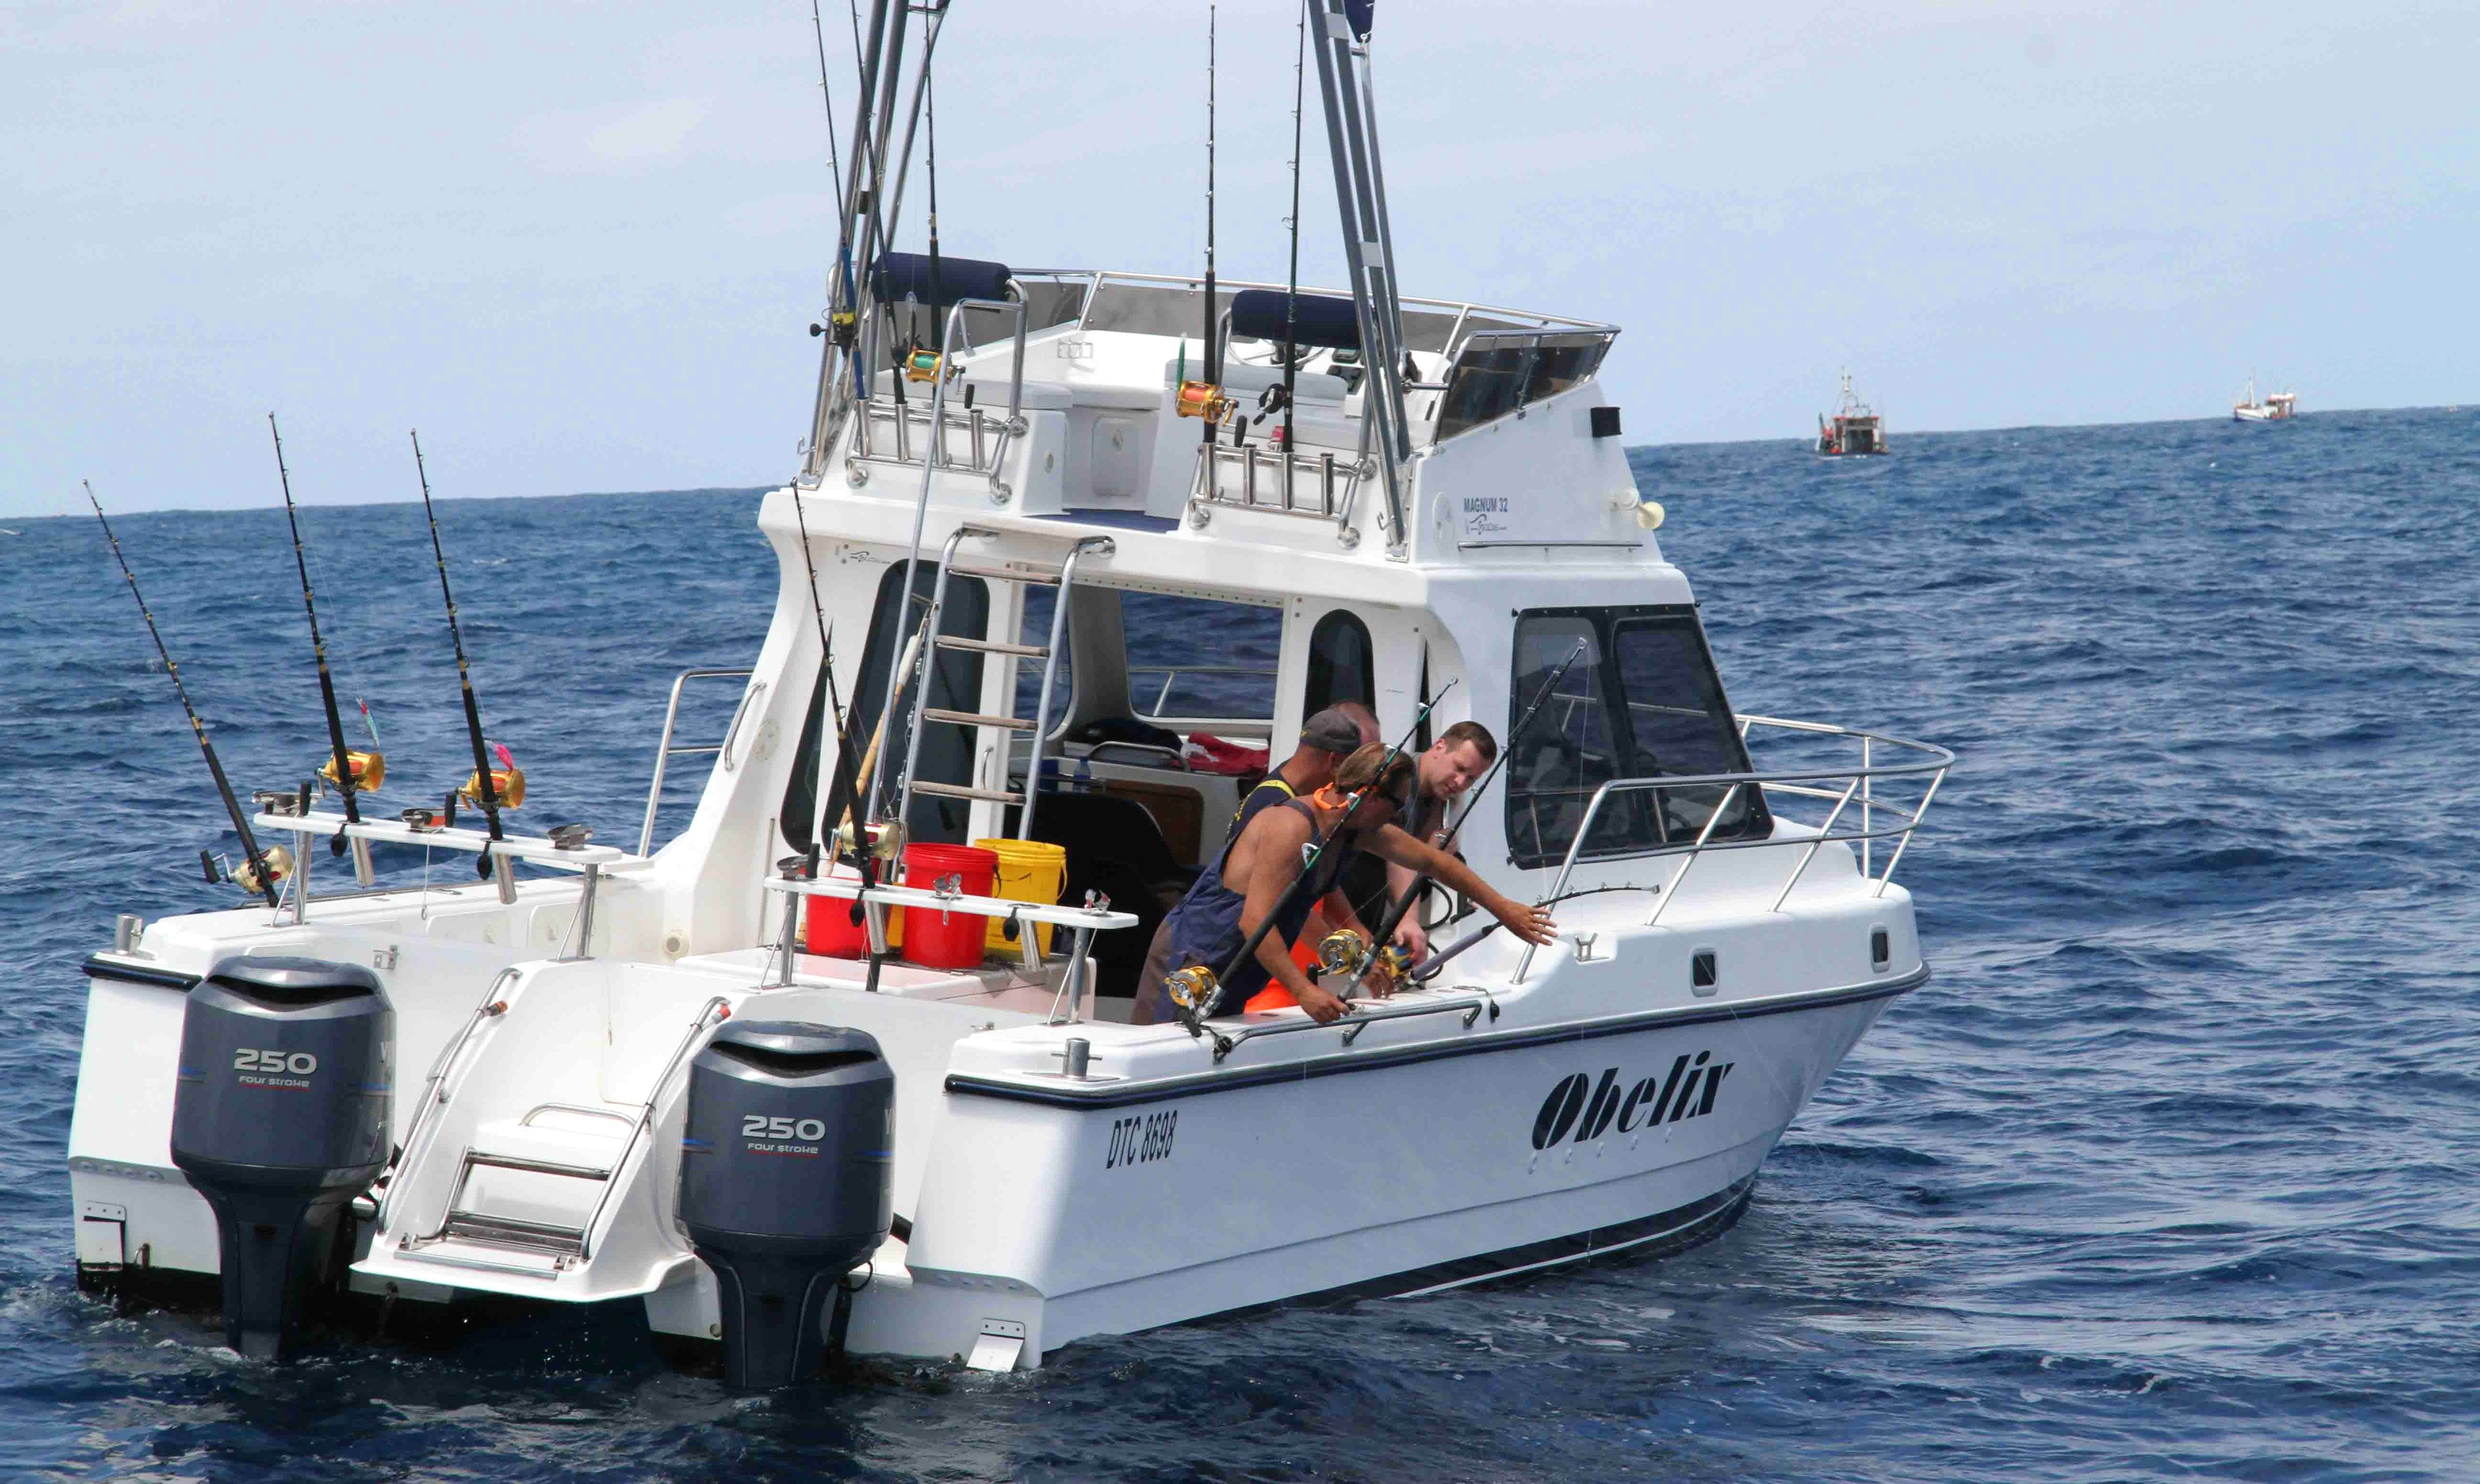 32' Cuddy Cabin Fishing Charter for 8 People in Cape Town, South Africa